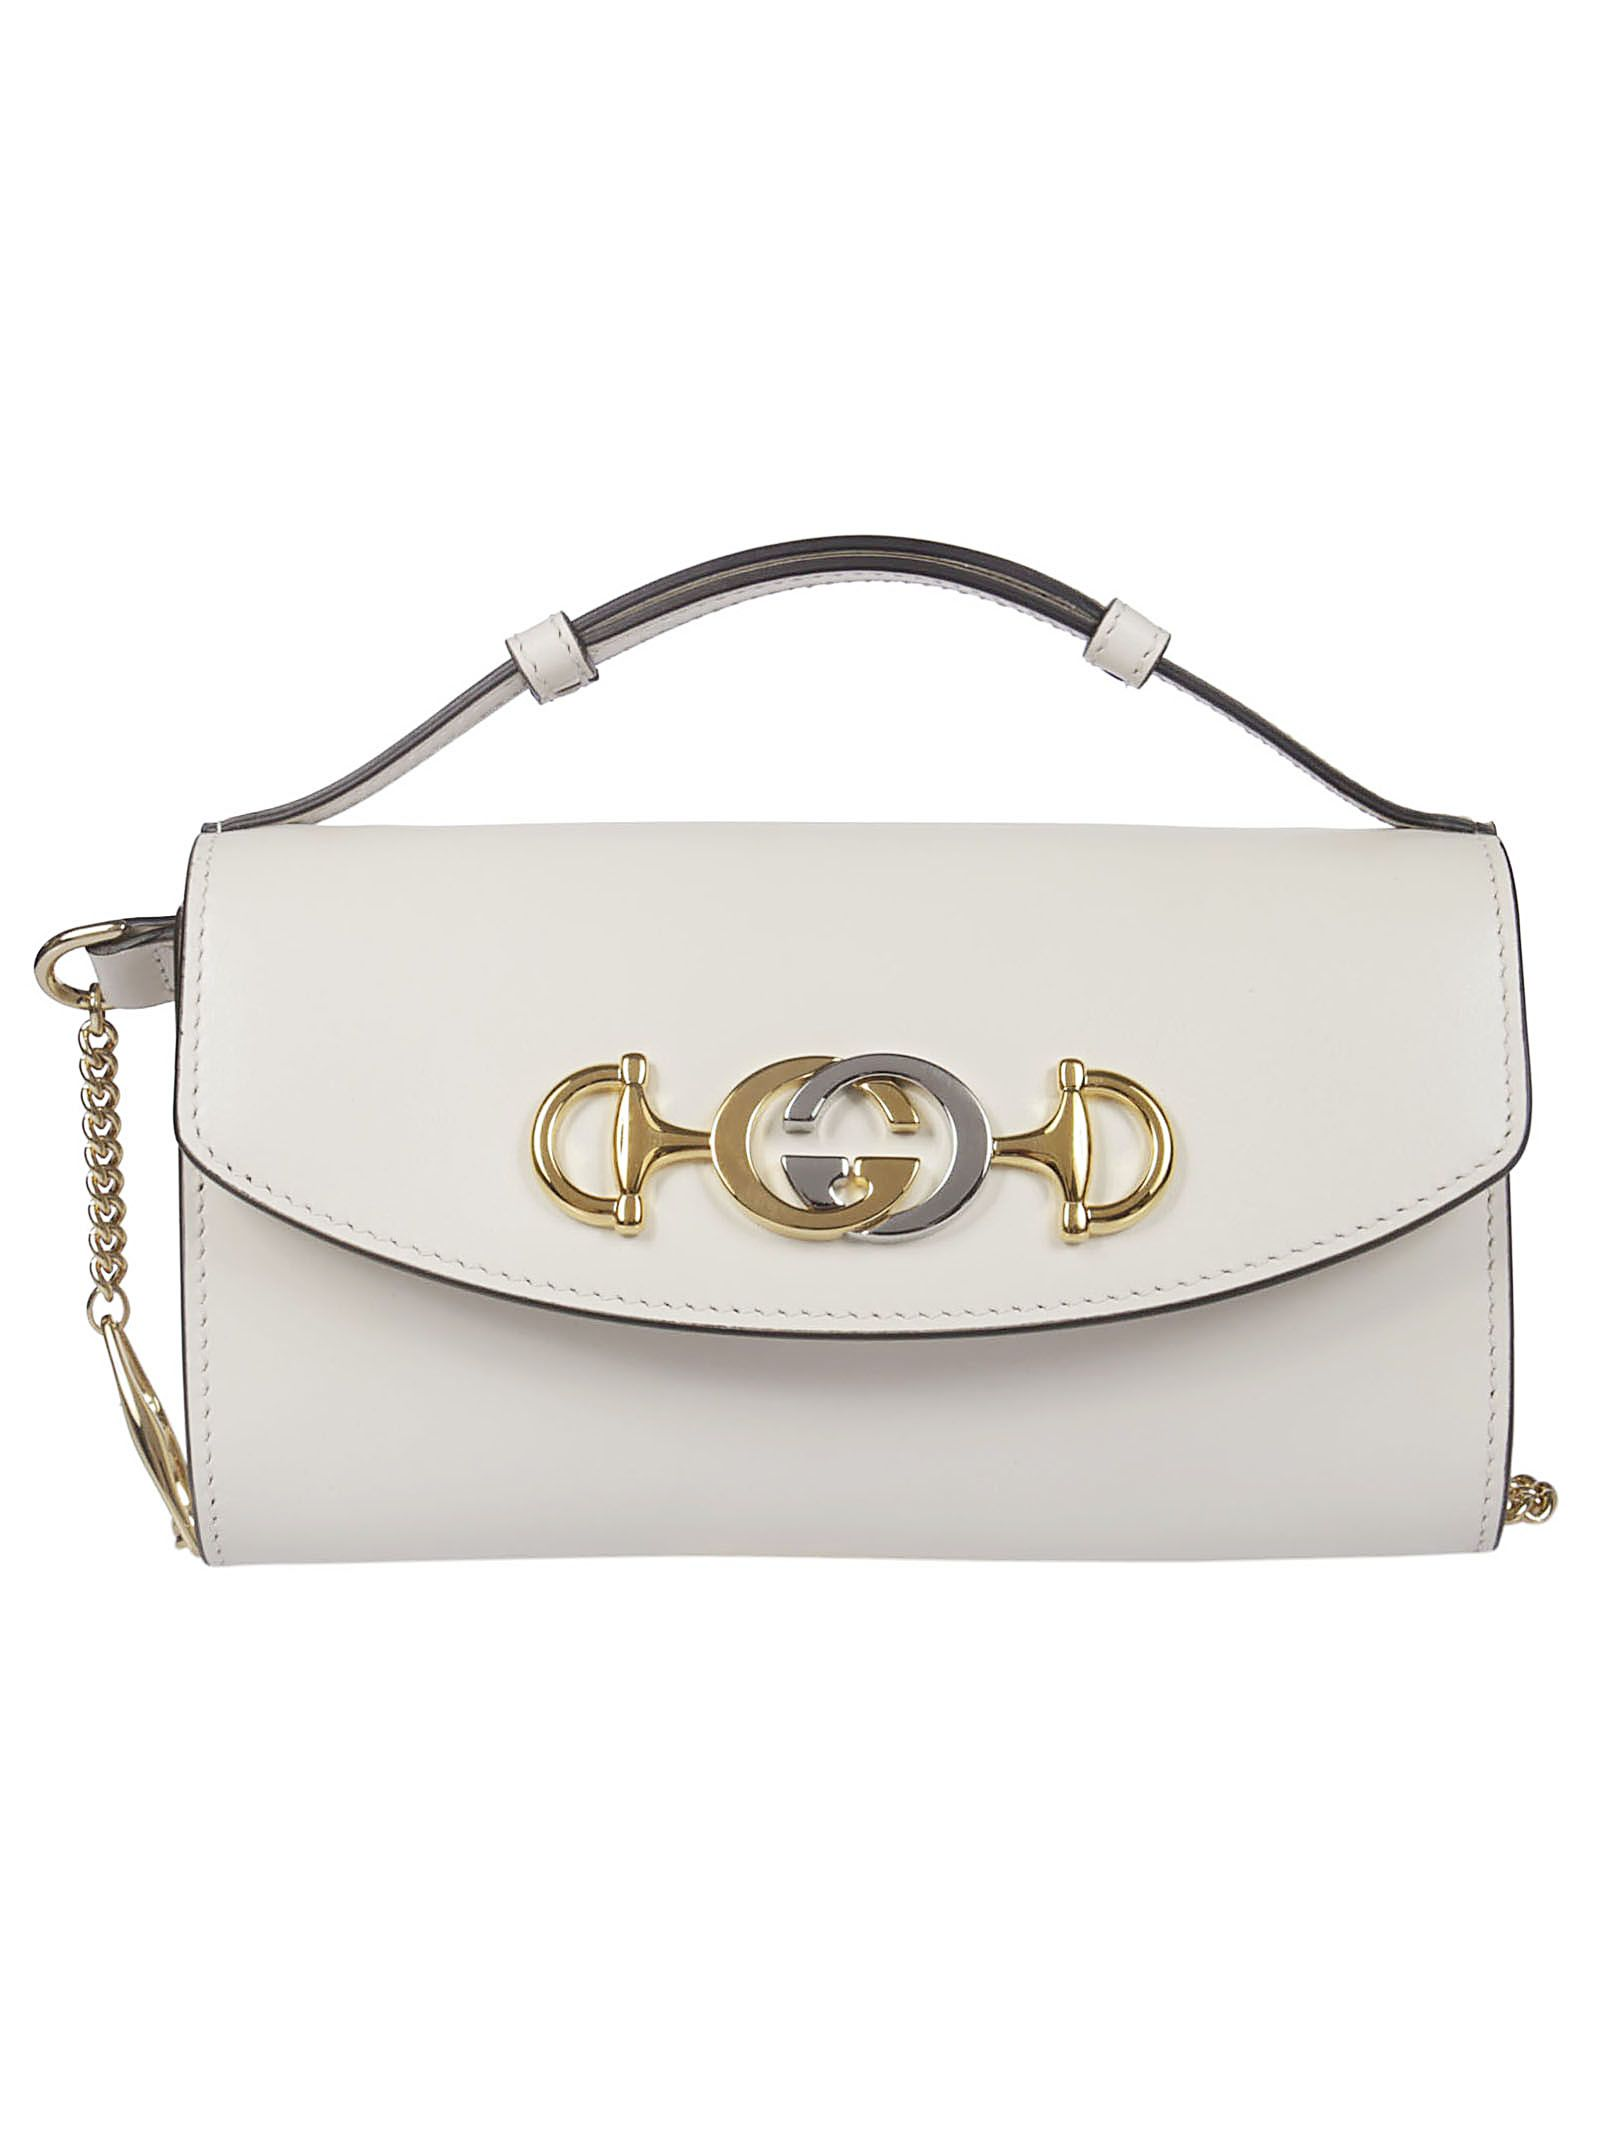 5945518776f Gucci Gucci Zumi Mini Shoulder Bag - Mystic White - 10936124